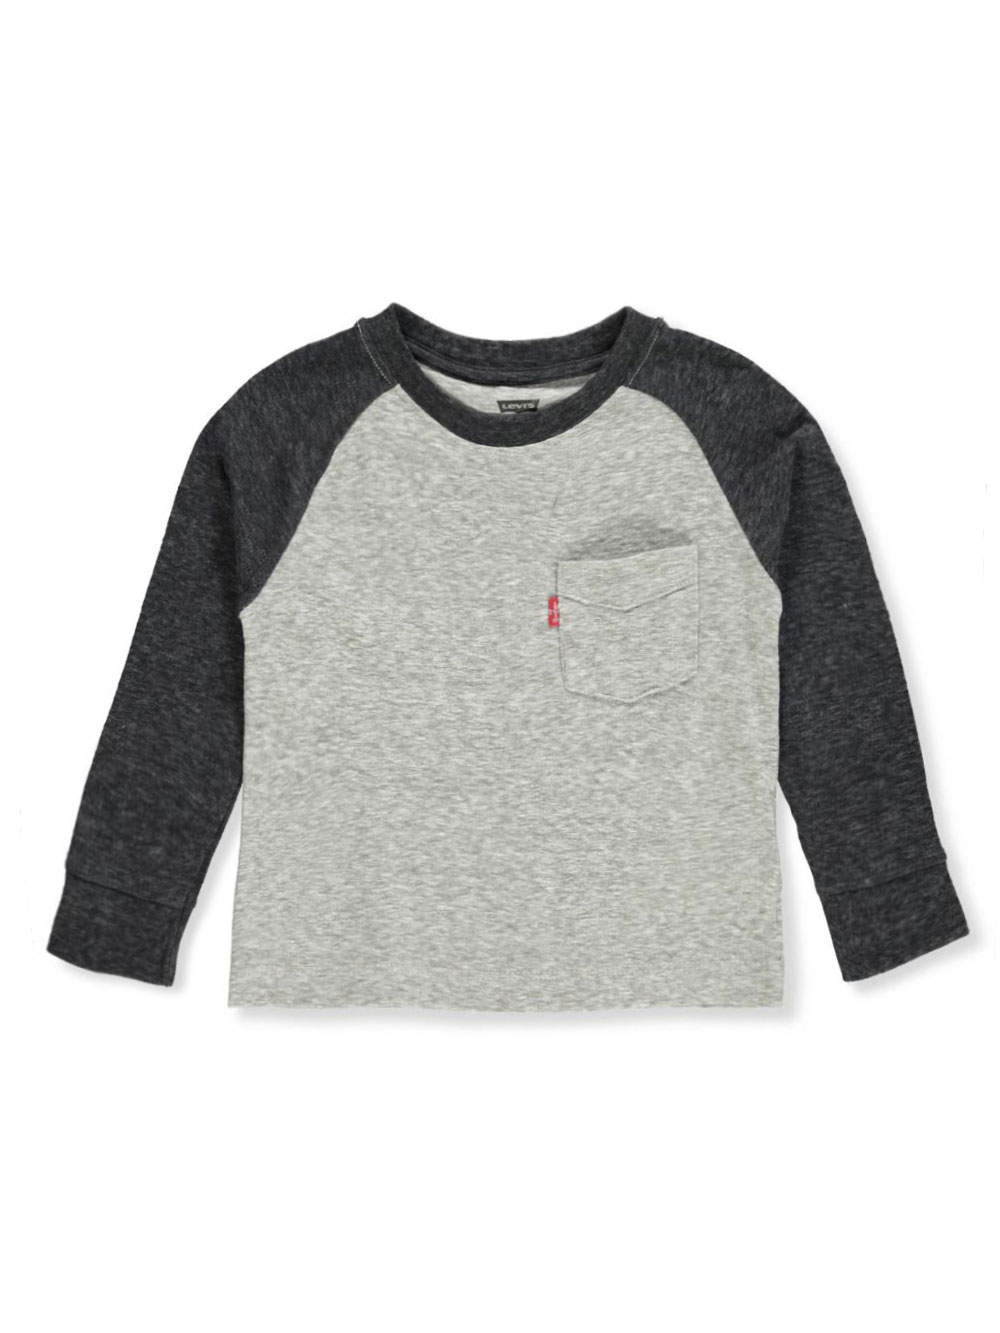 T-Shirts Chest Pocket